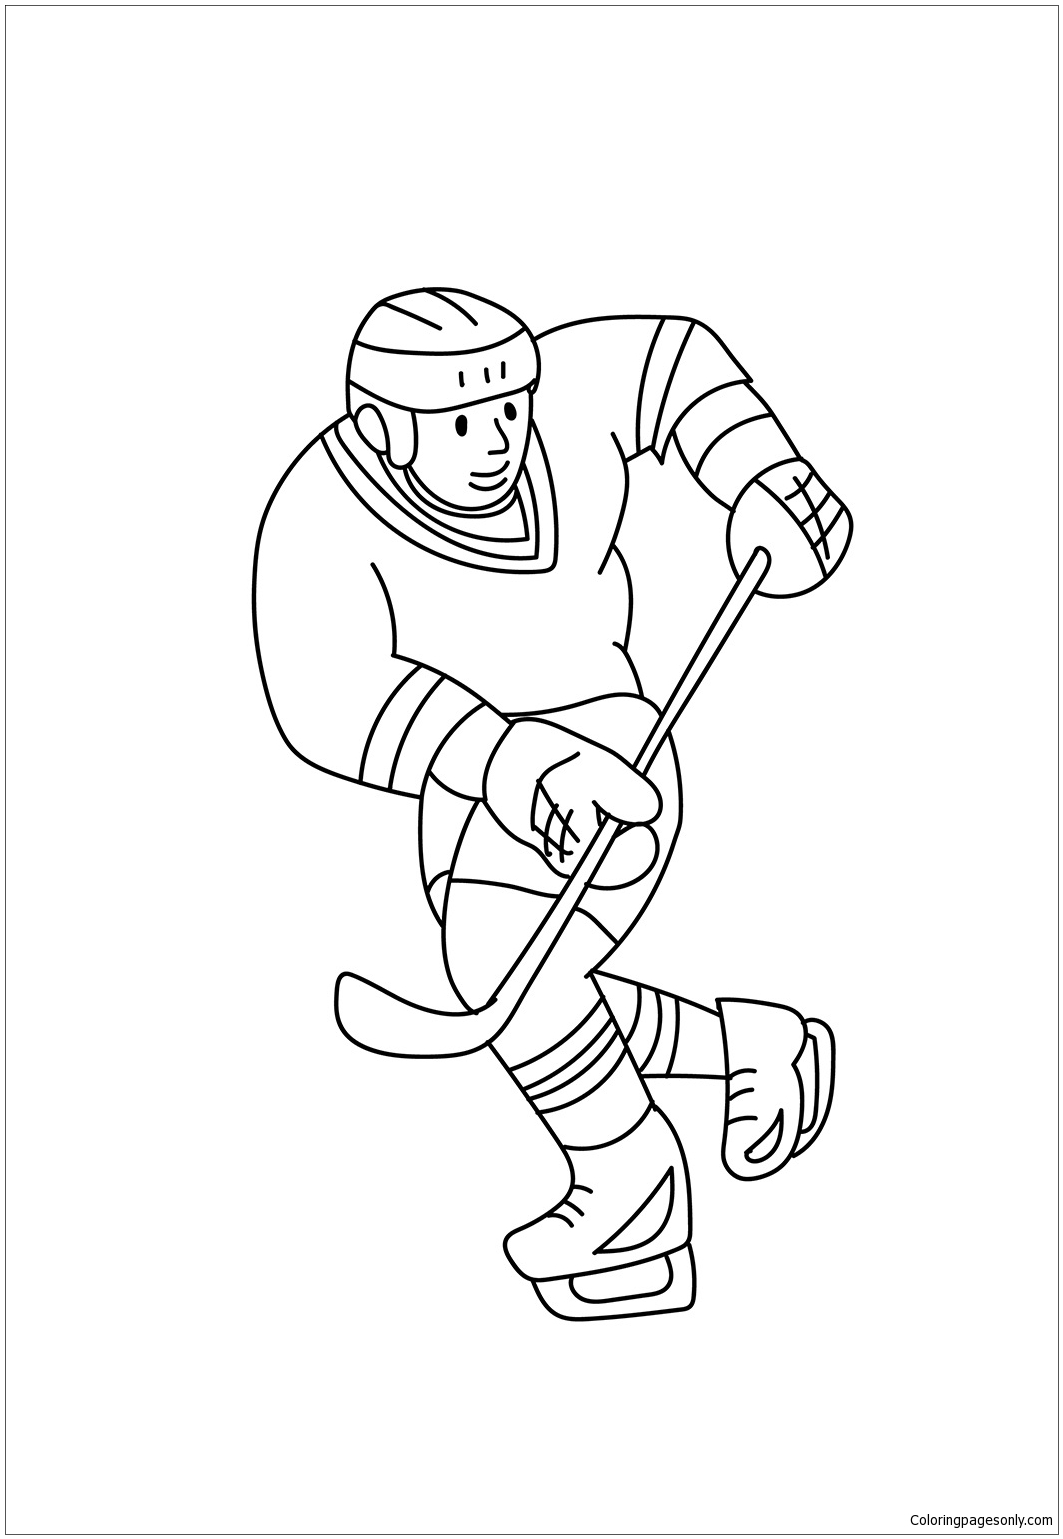 Ice Hockey Playing Coloring Page Free Coloring Pages Online